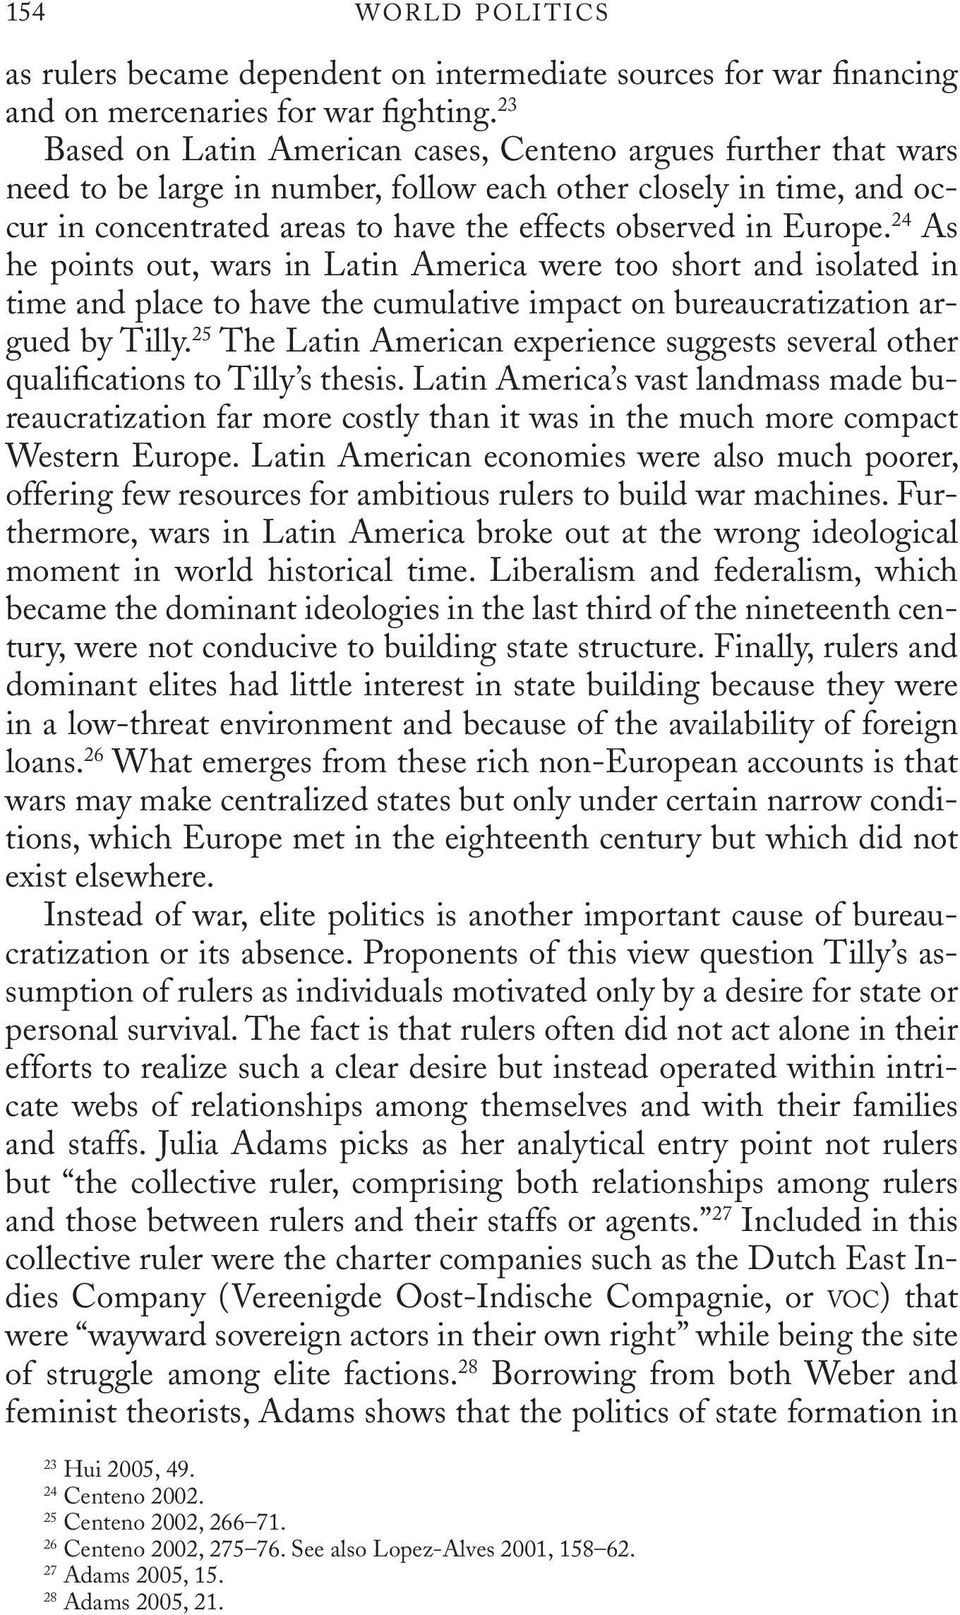 Europe. 24 As he points out, wars in Latin America were too short and isolated in time and place to have the cumulative impact on bureaucratization argued by Tilly.